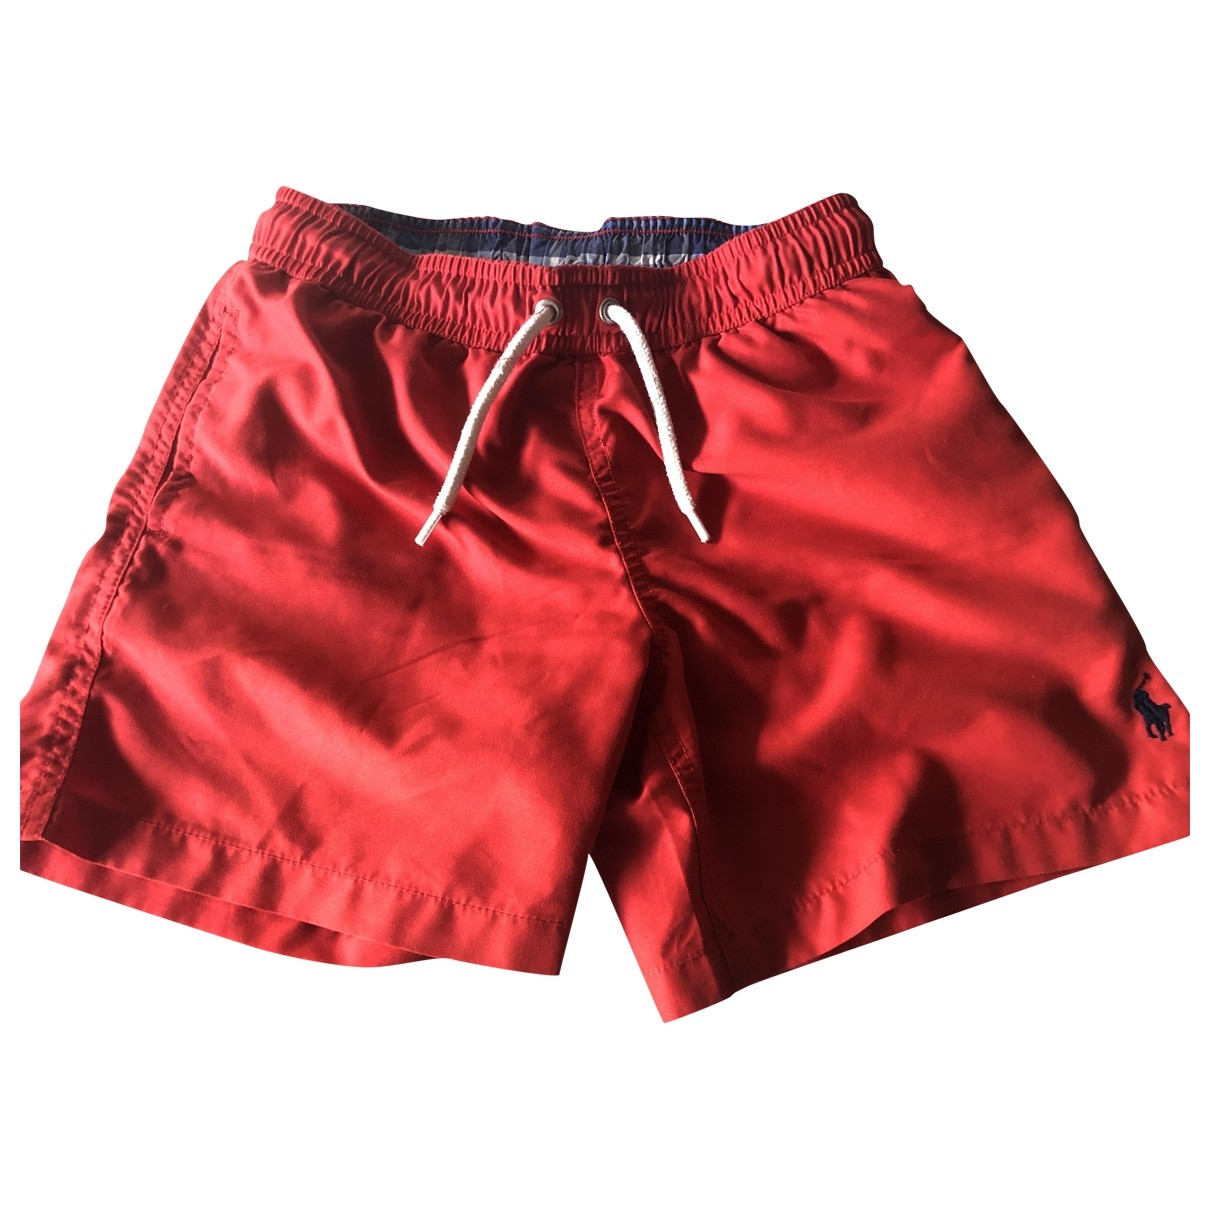 Polo Ralph Lauren \N Red Cotton Shorts for Kids 8 years - until 50 inches UK